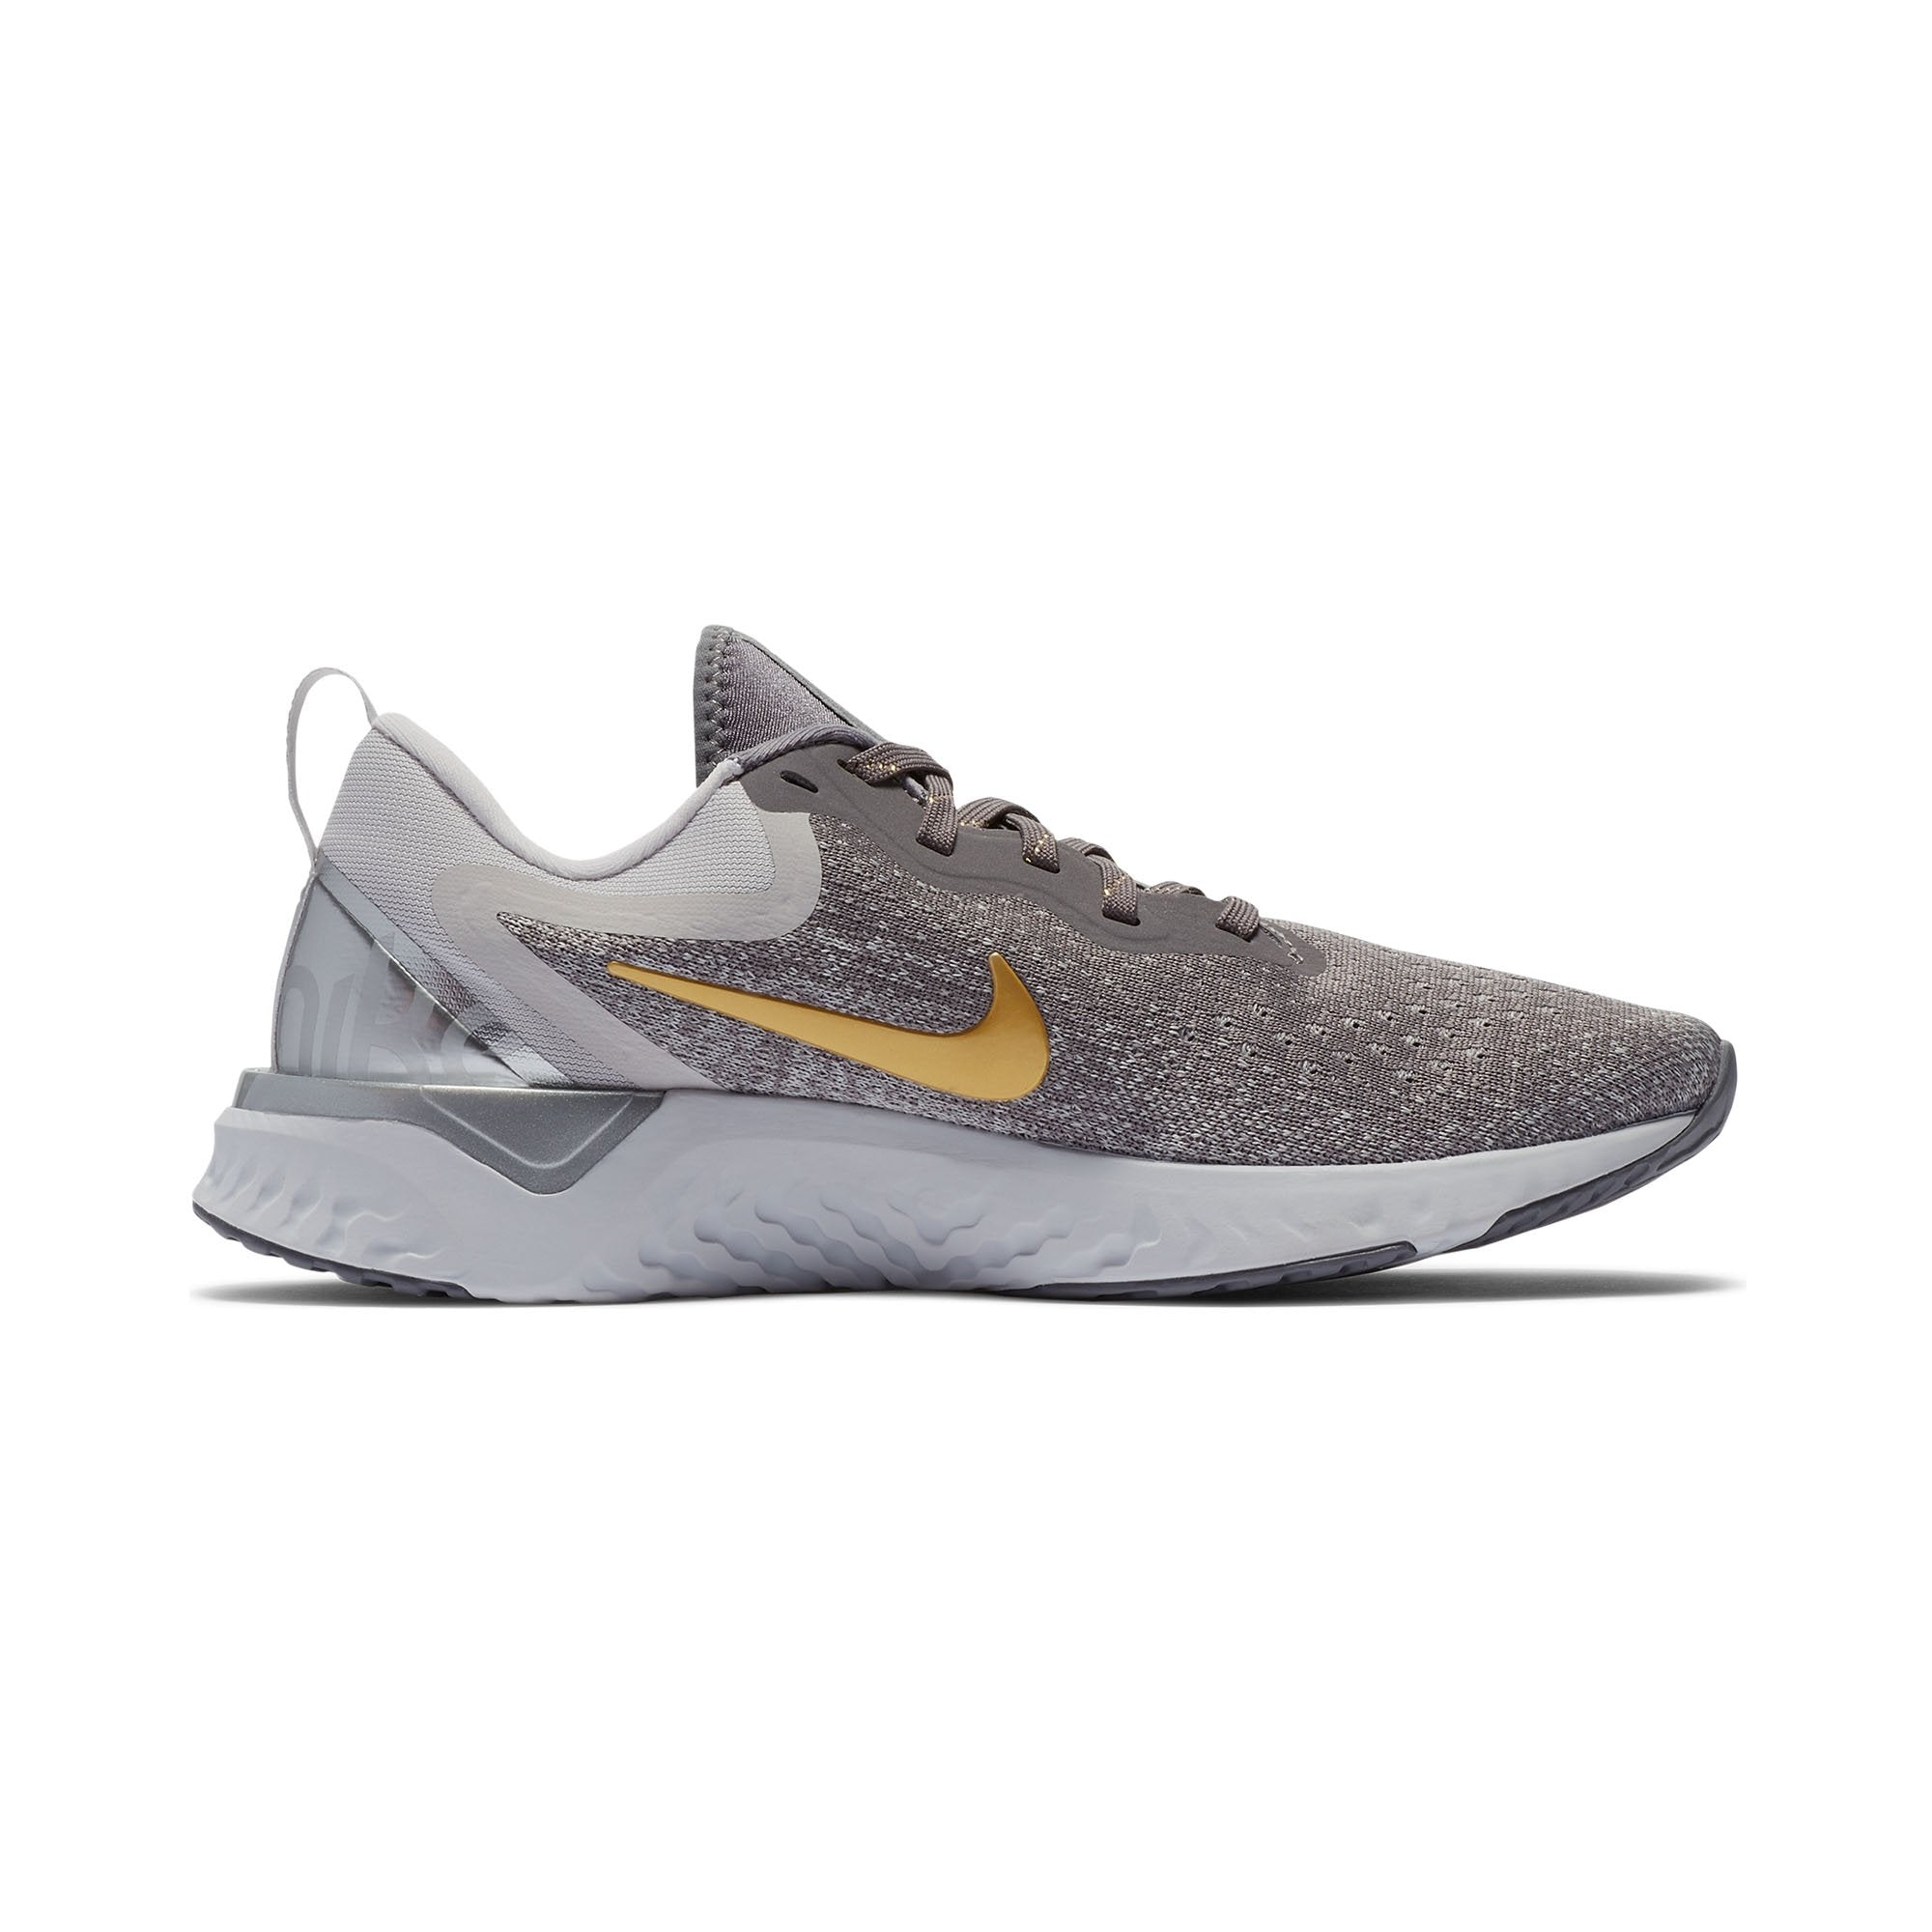 cb77172621c5f Buy Nike Women Odyssey React Premium Running Shoes